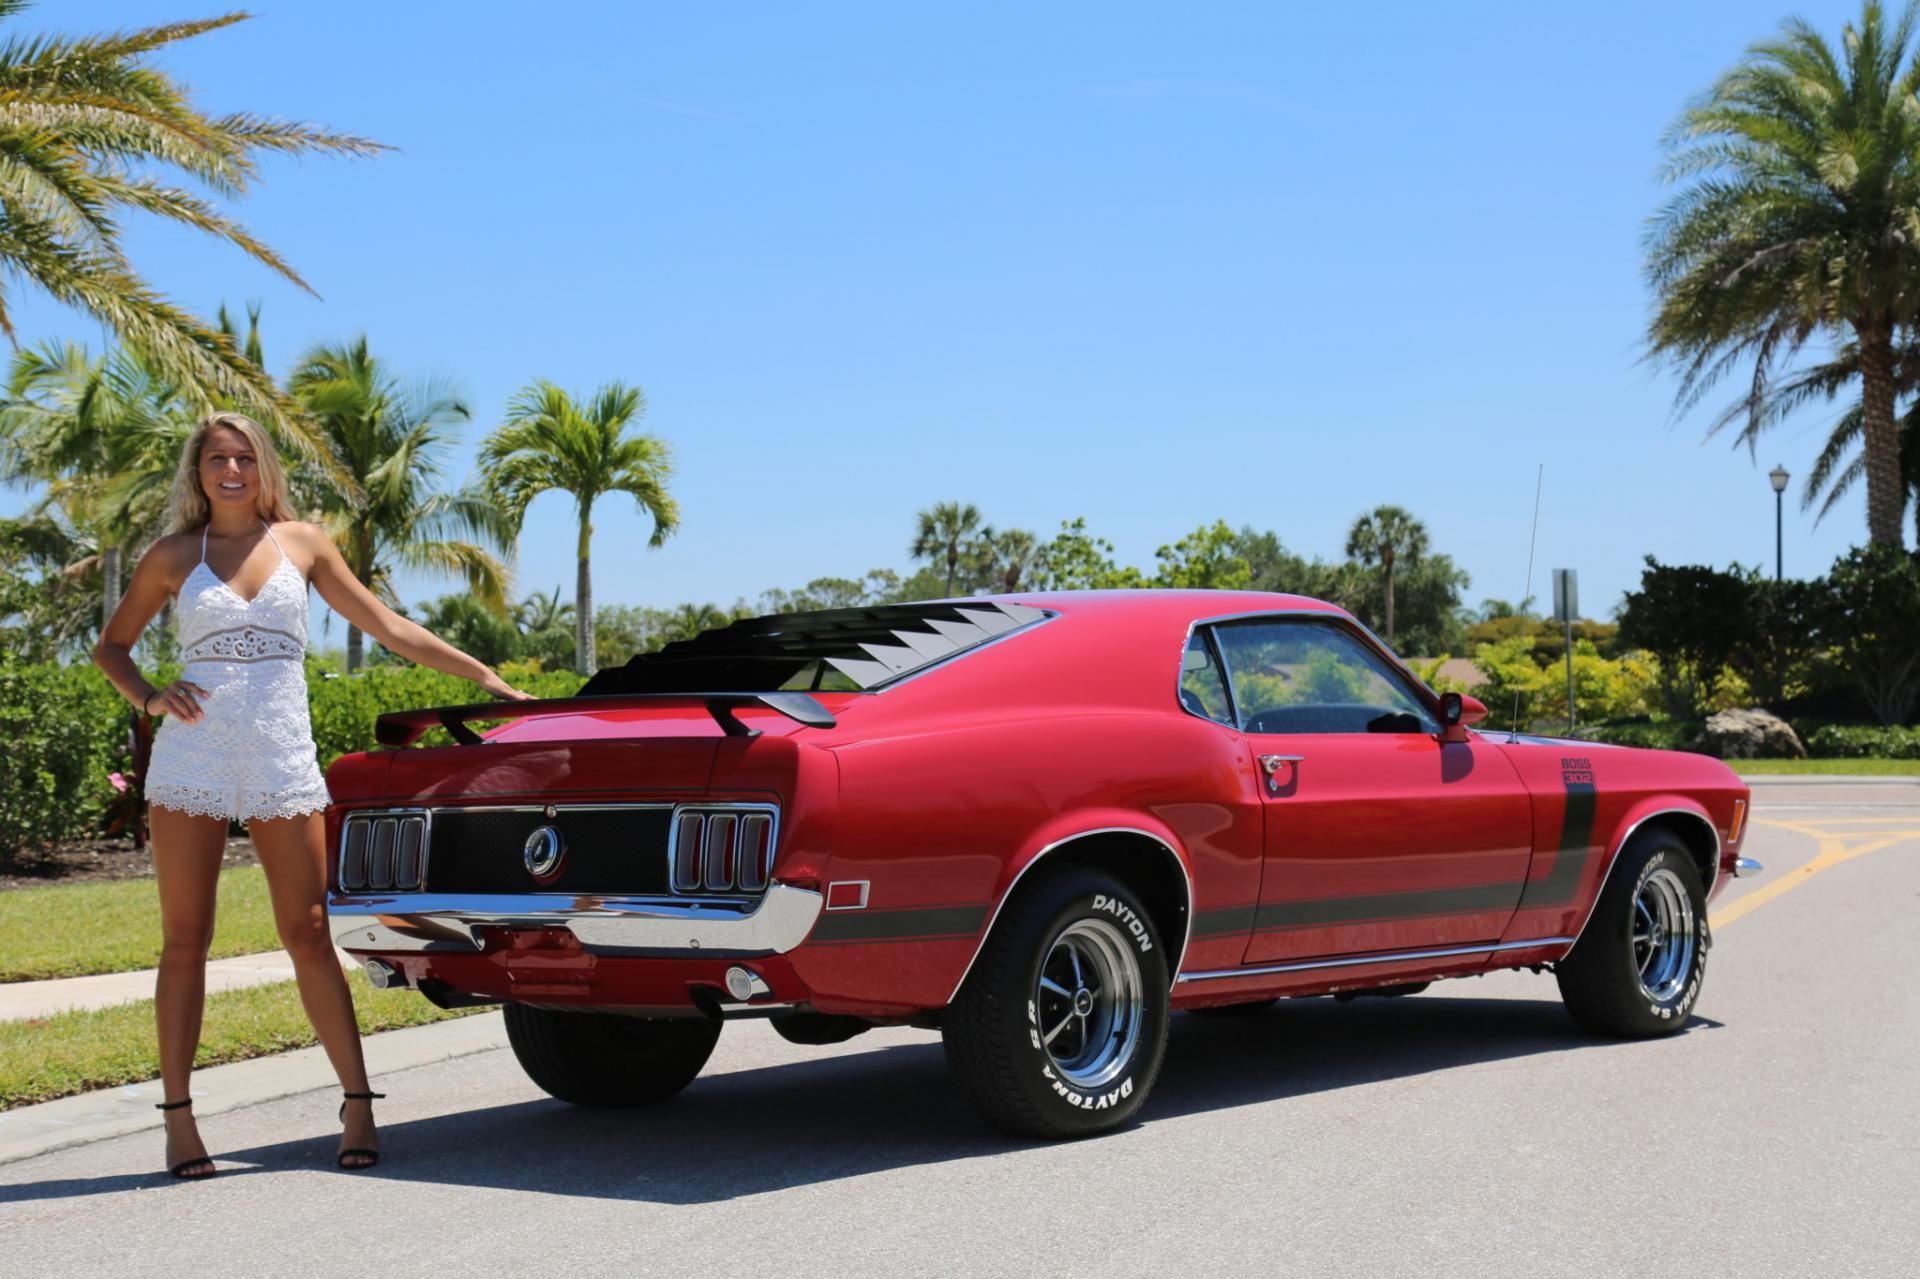 Used 1970 Ford Mustang 302 Boss for sale Sold at Muscle Cars for Sale Inc. in Fort Myers FL 33912 4